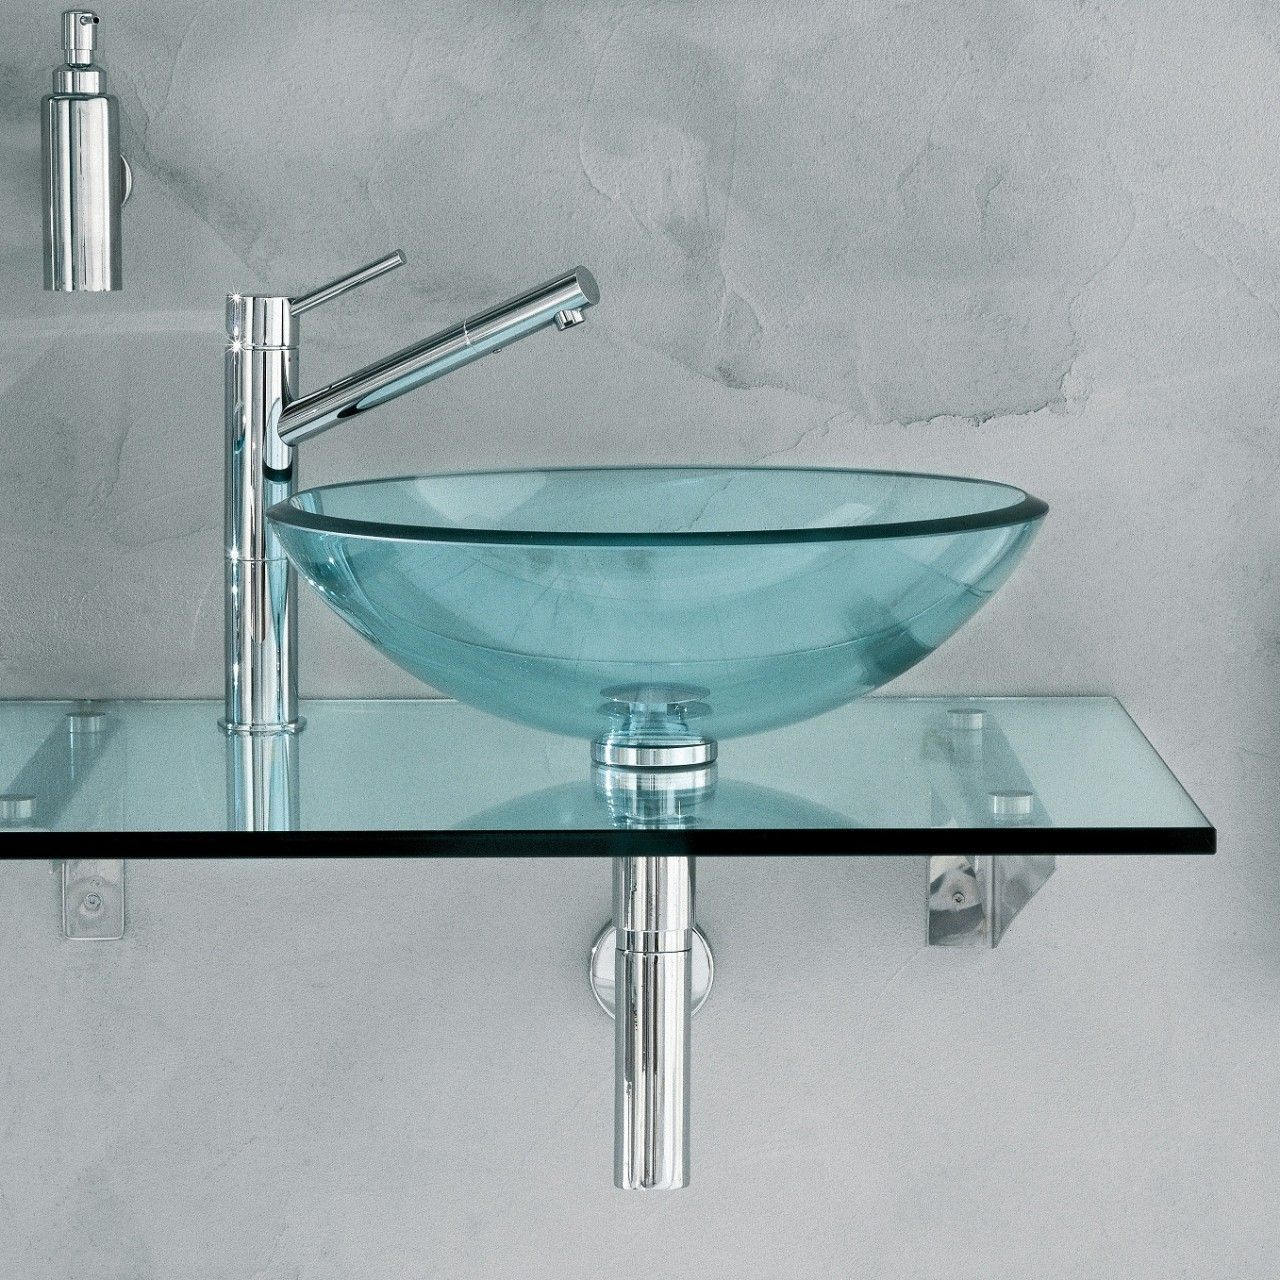 Decorative Bathroom Fixtures Create a Beautiful Base - Glass Vessel Sinks